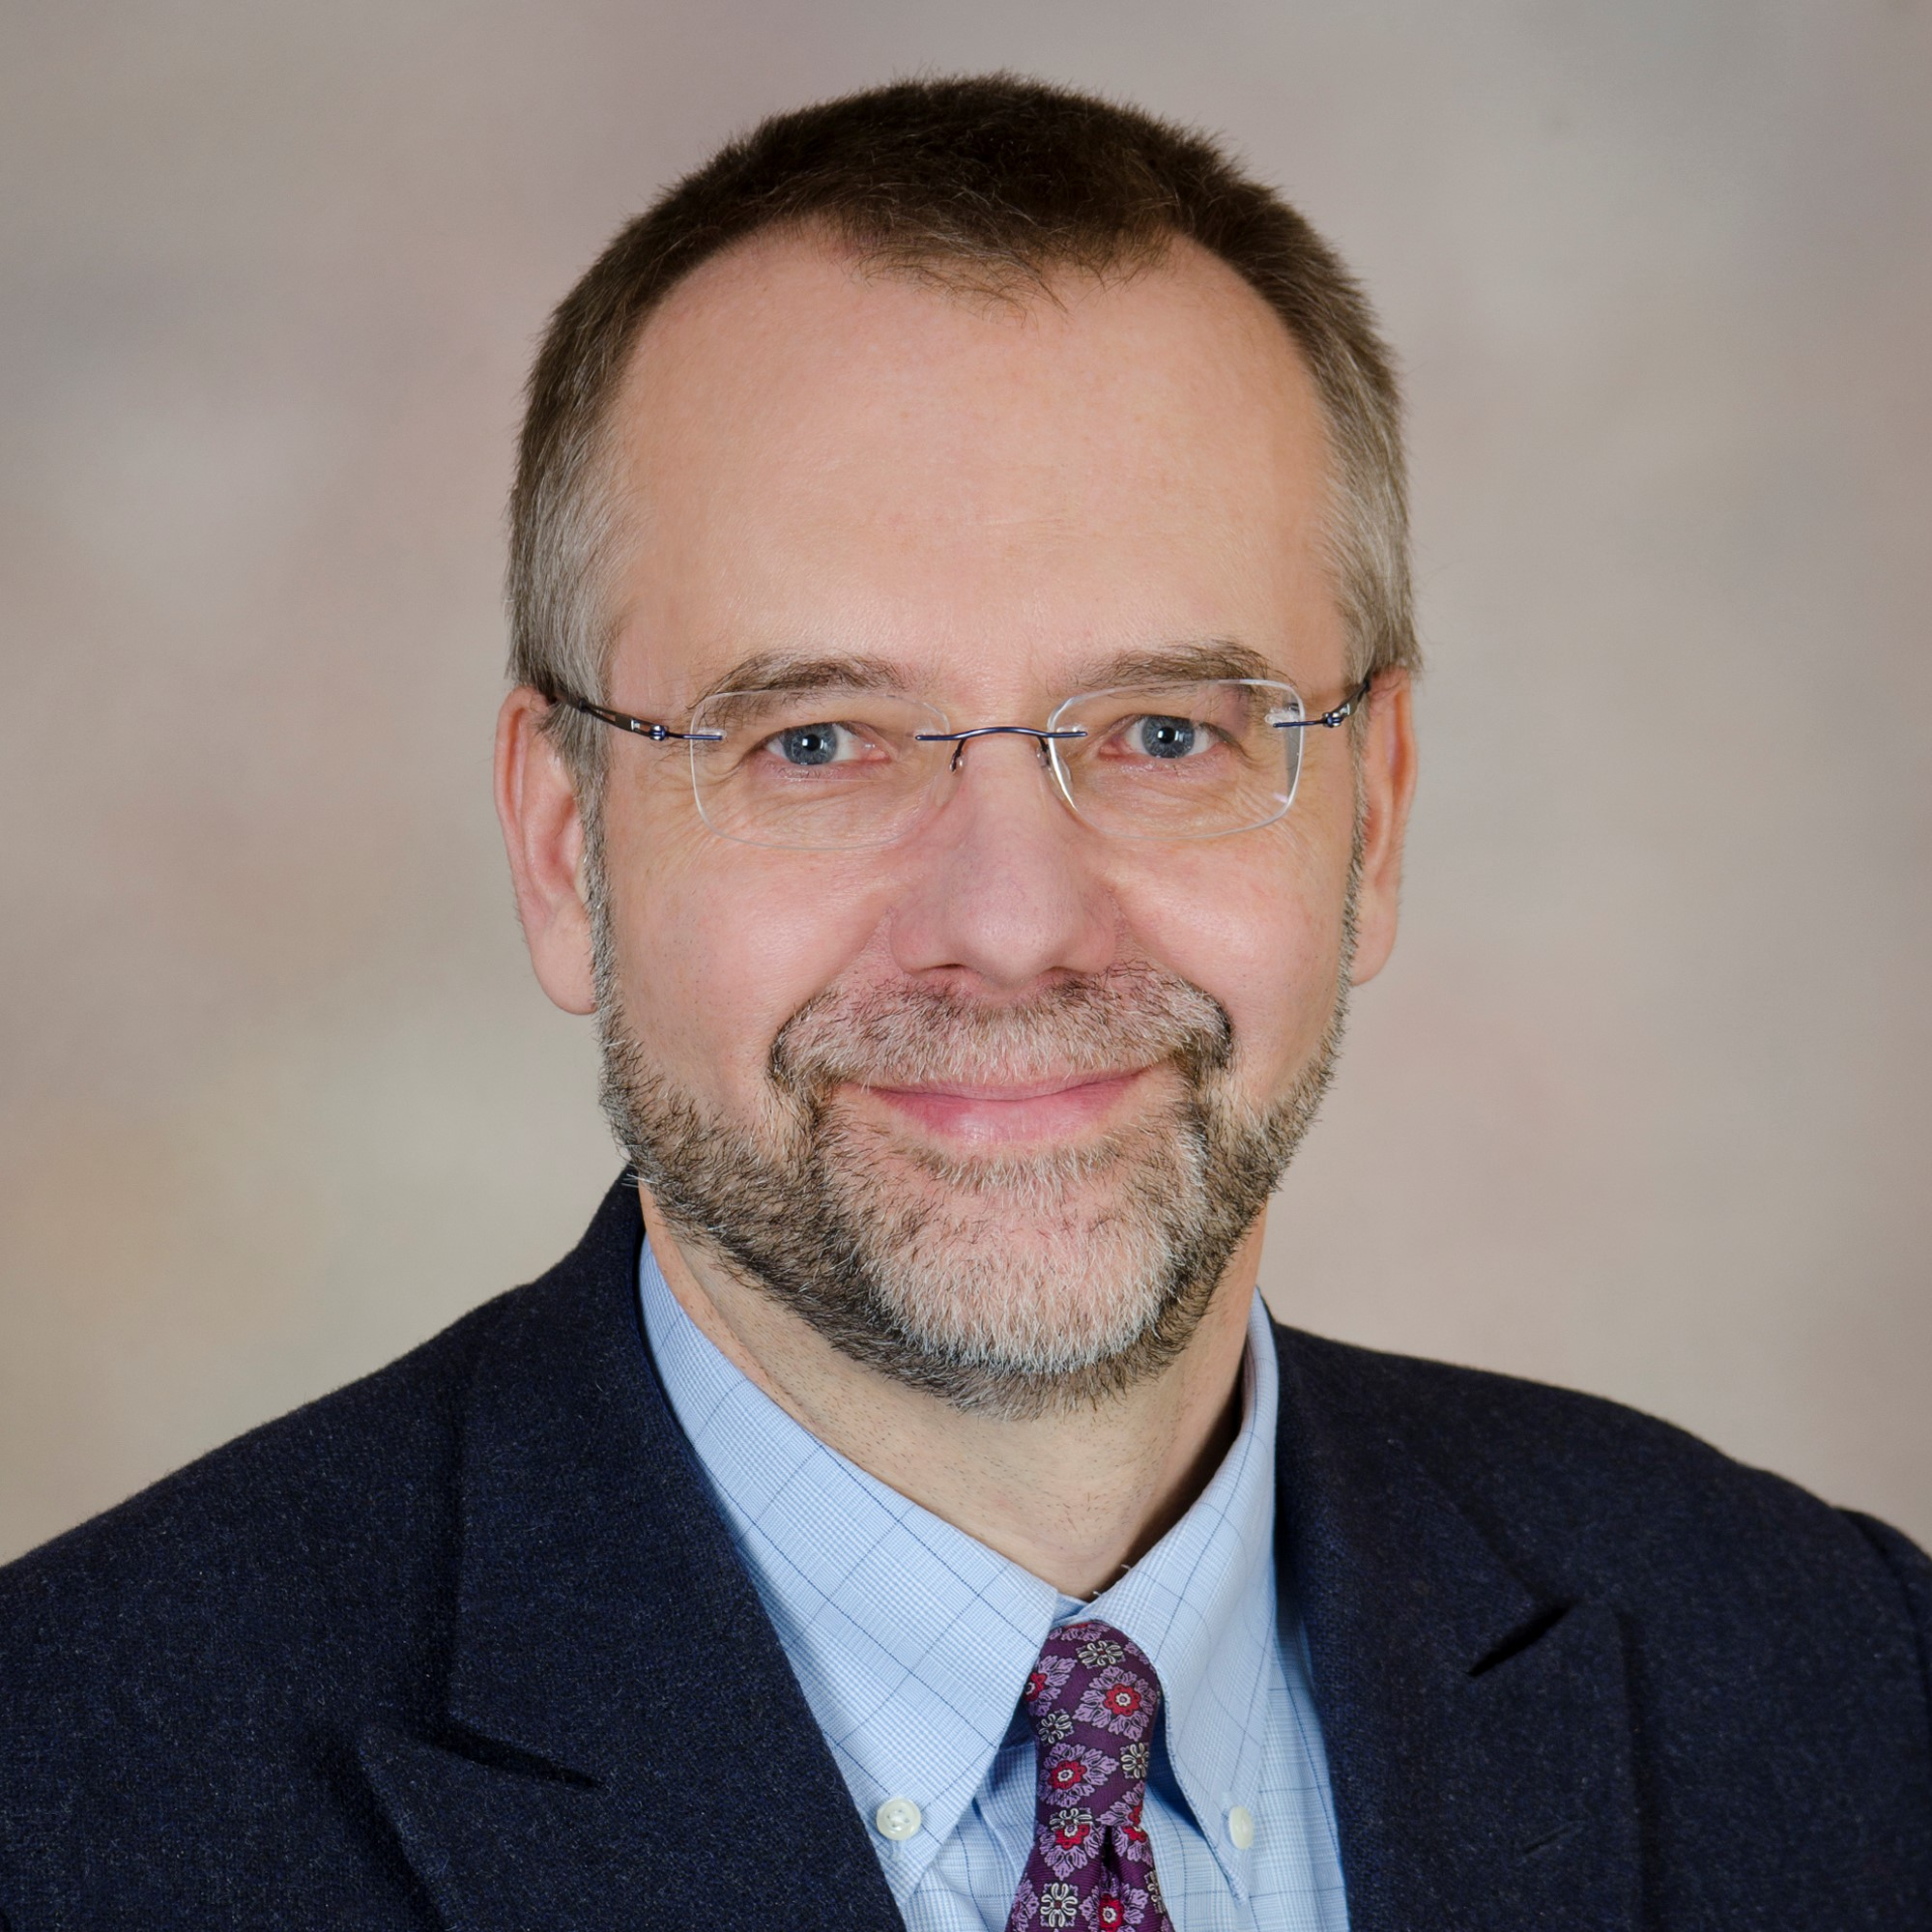 Tomasz M. Beer, MD